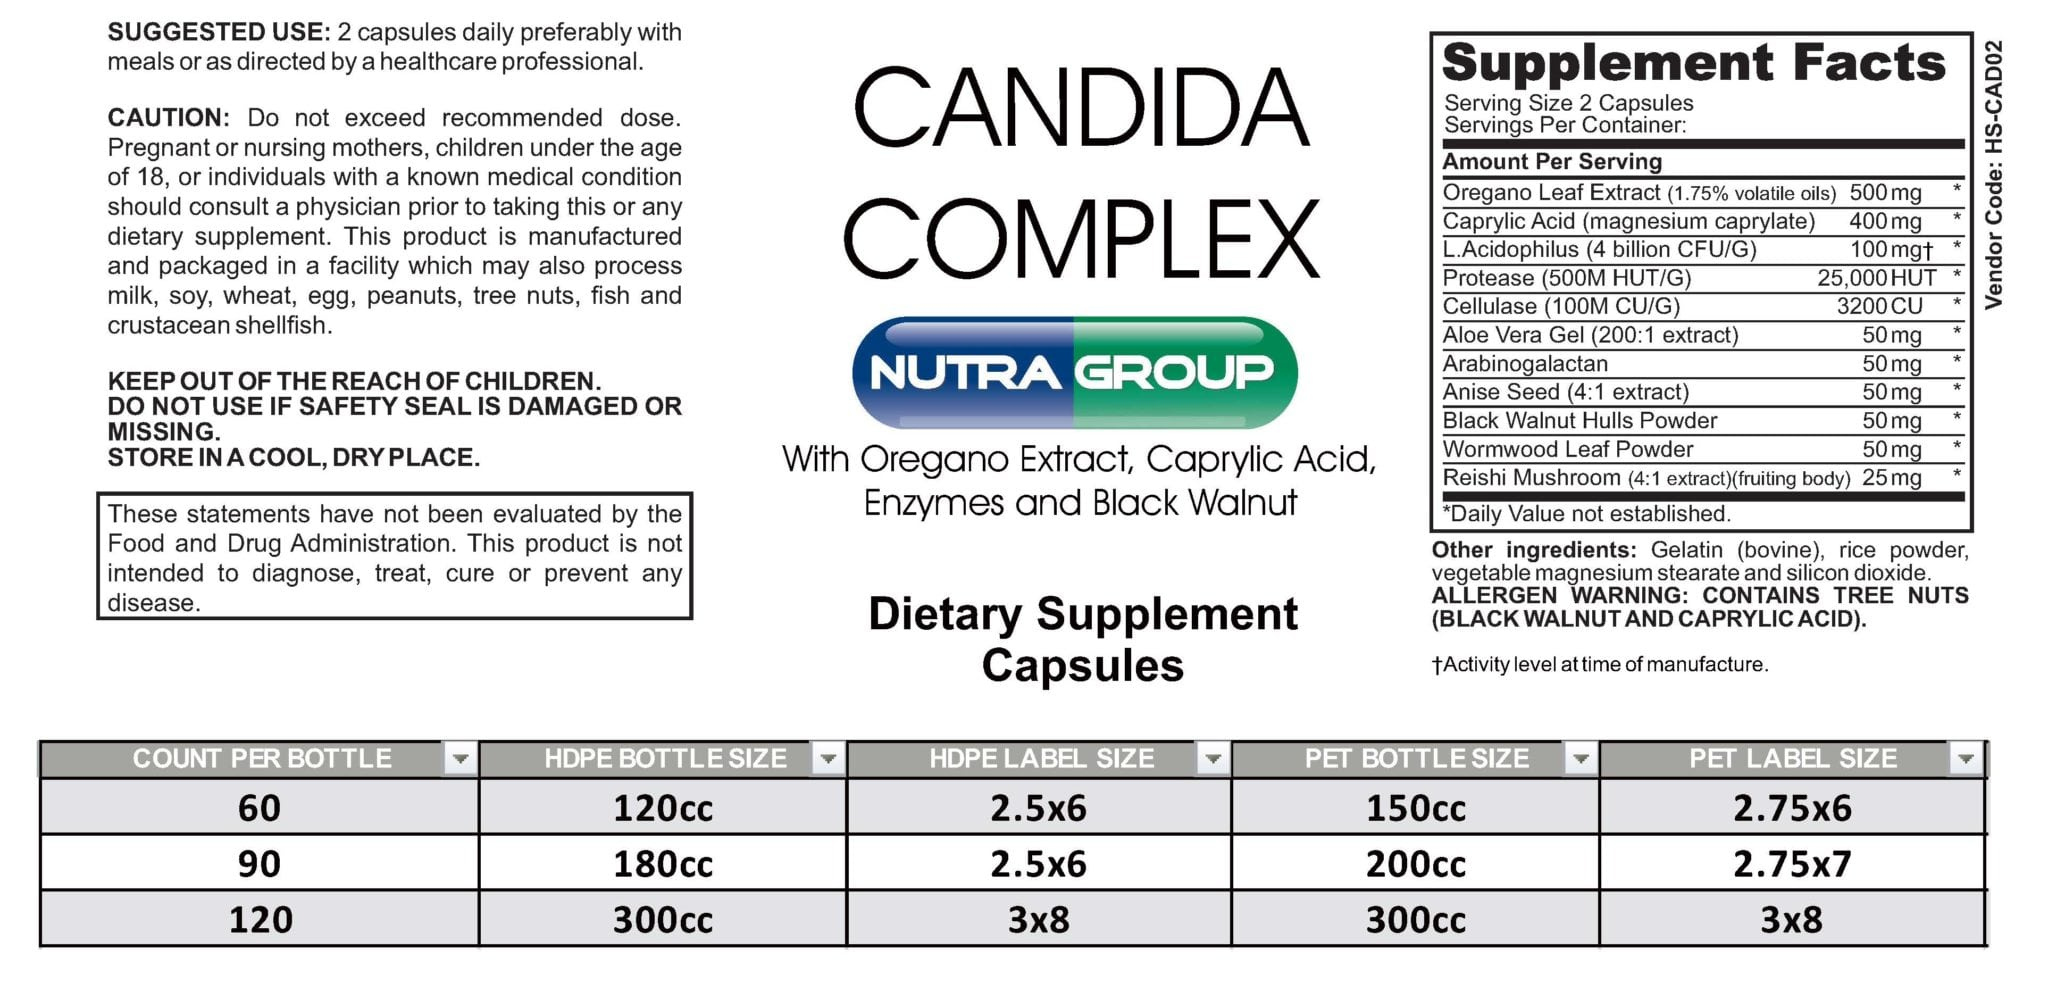 Private label candida supplements